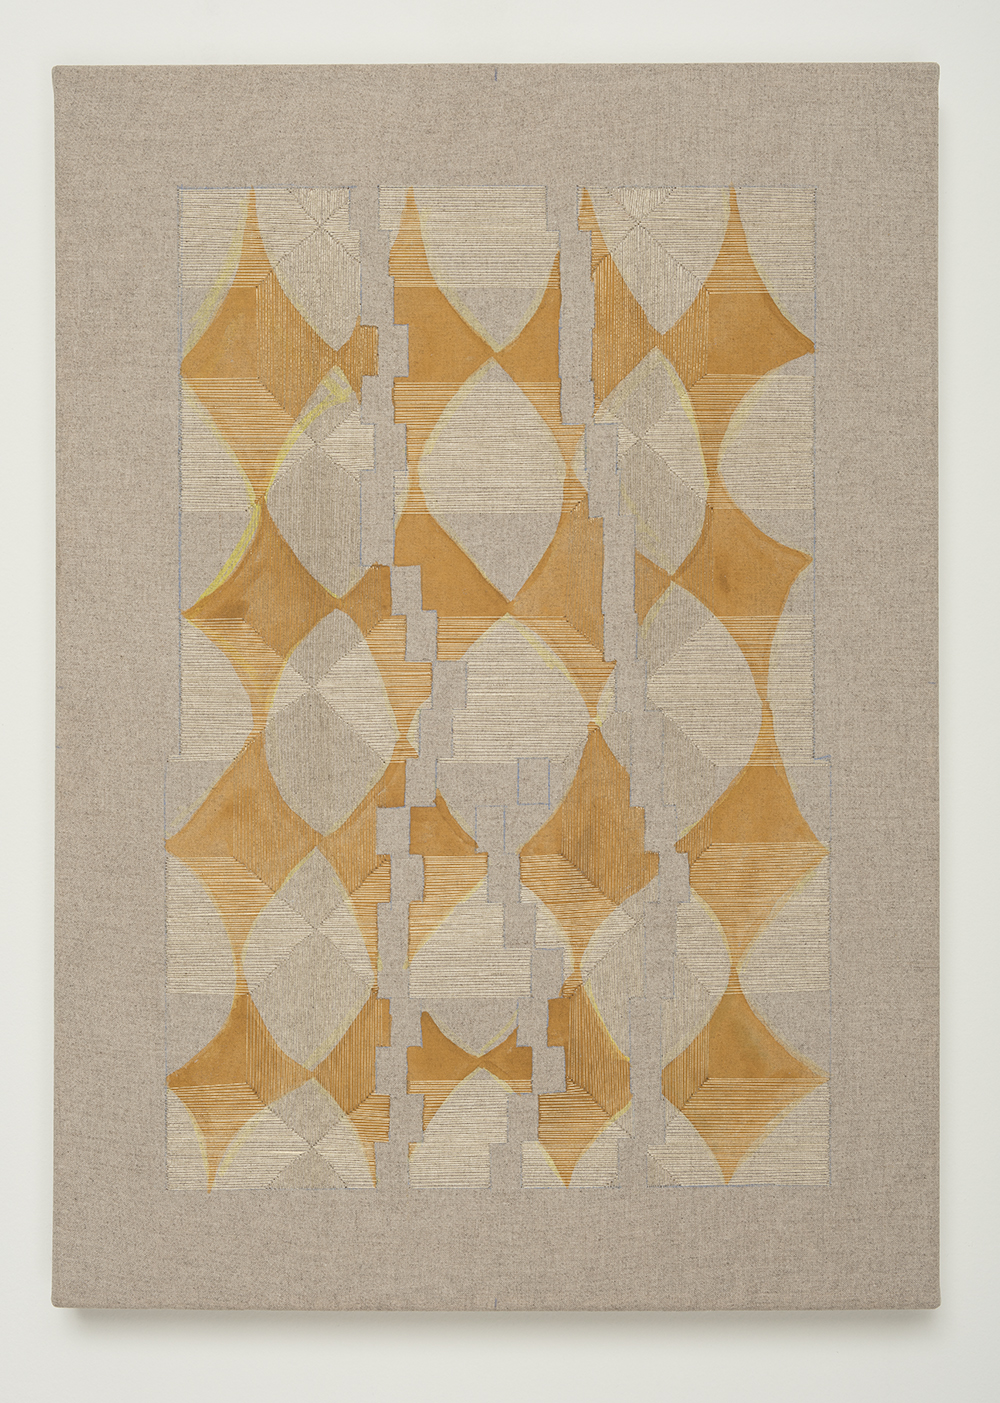 Yearning For New Physics , 2018 Thread, watercolor, transfer pigment, rabbit skin glue on linen;